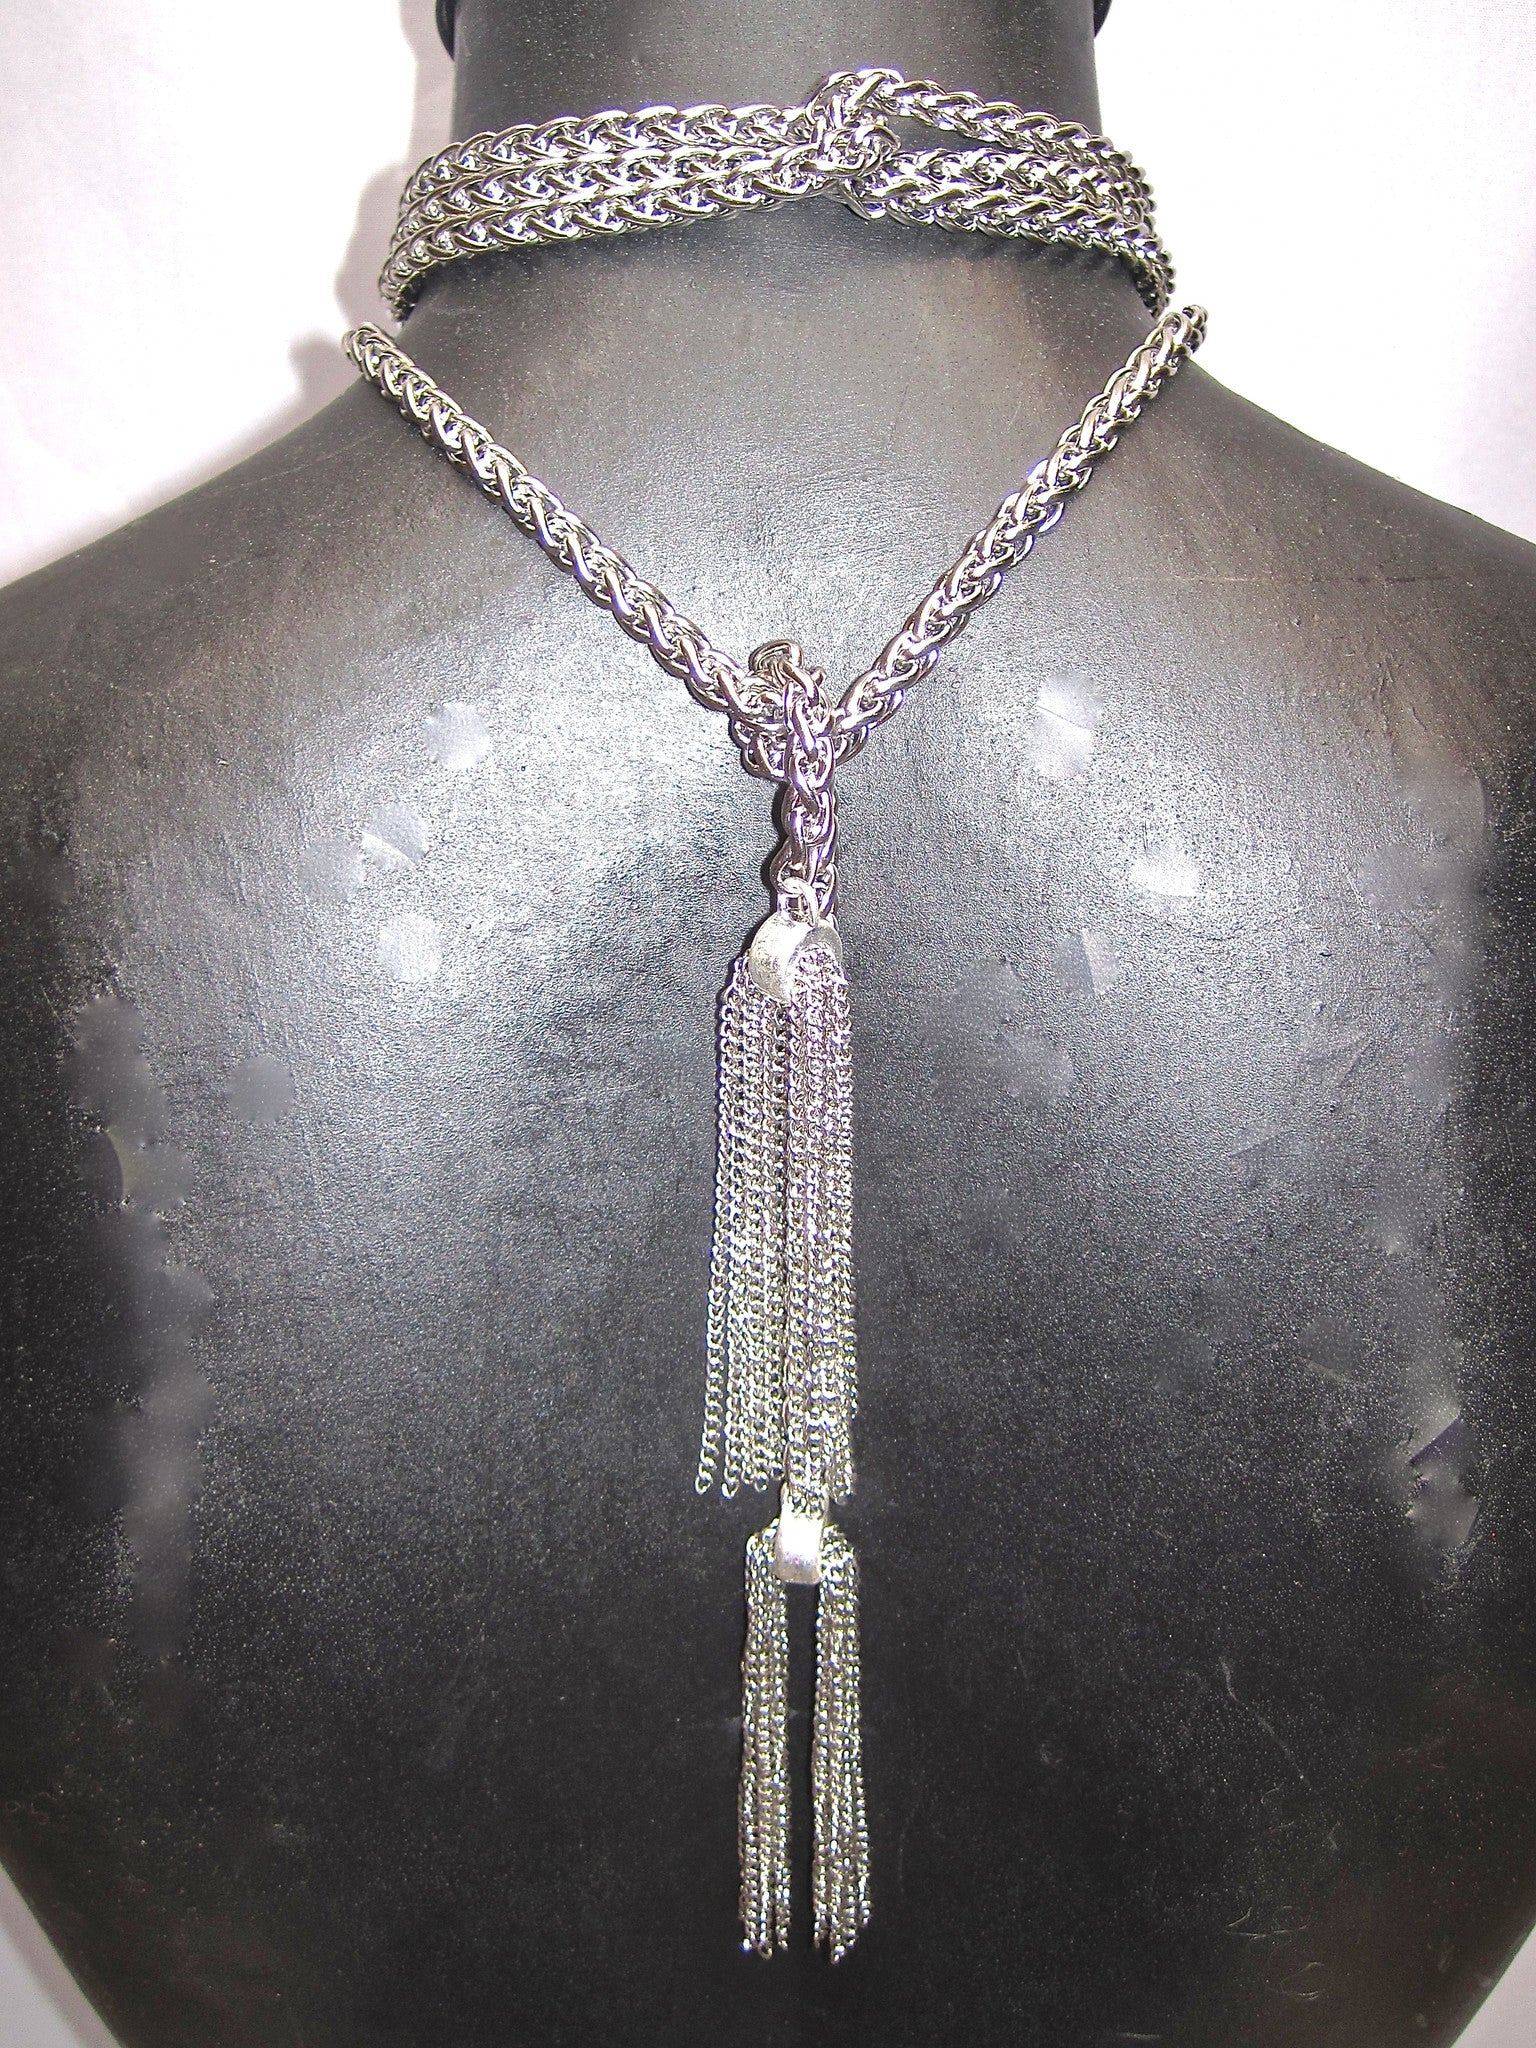 EXTRA LONG STAINLESS STEEL LARIAT NECKLACE WITH CHAIN TASSELS. by NYET Jewelry.